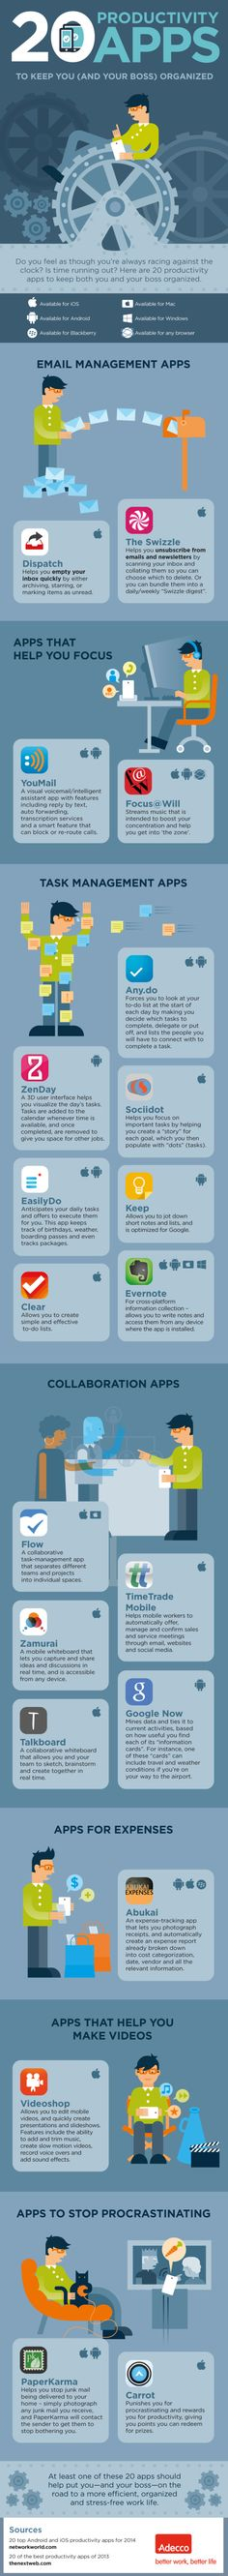 Use technology to help you get things done. (From: Best of 2013 and 2014 apps)